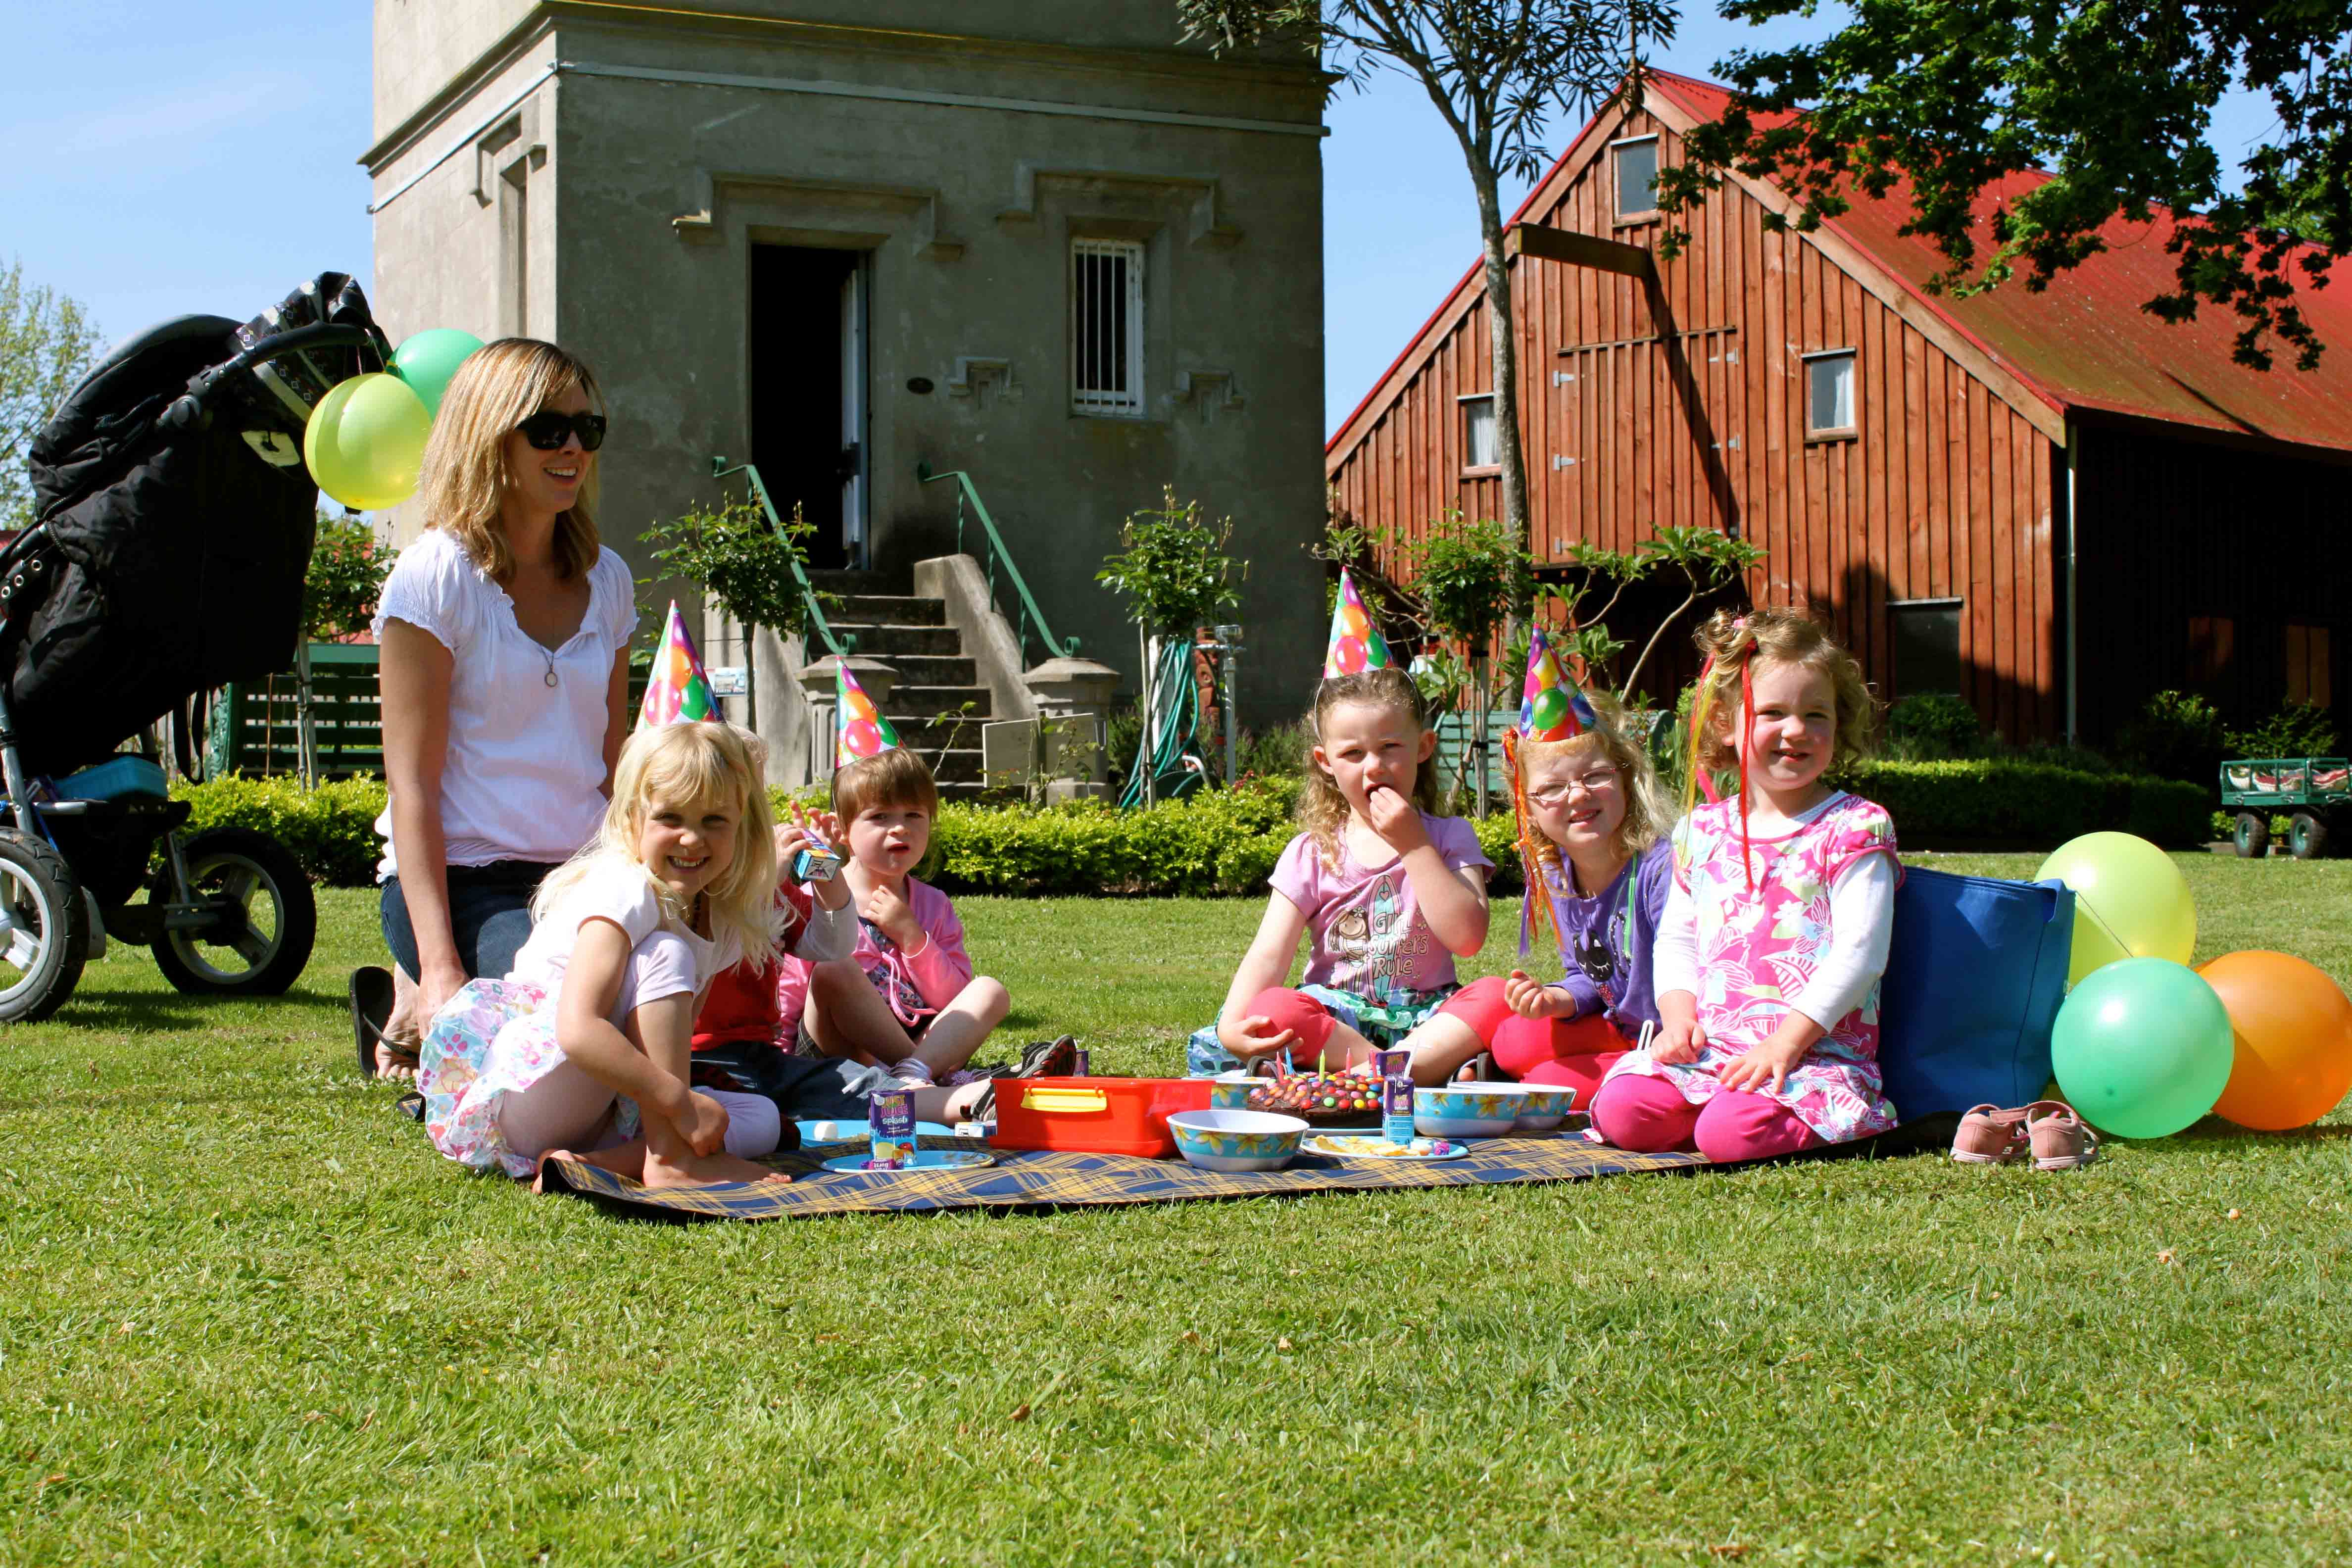 Mum with kids sitting on grass having a picnic